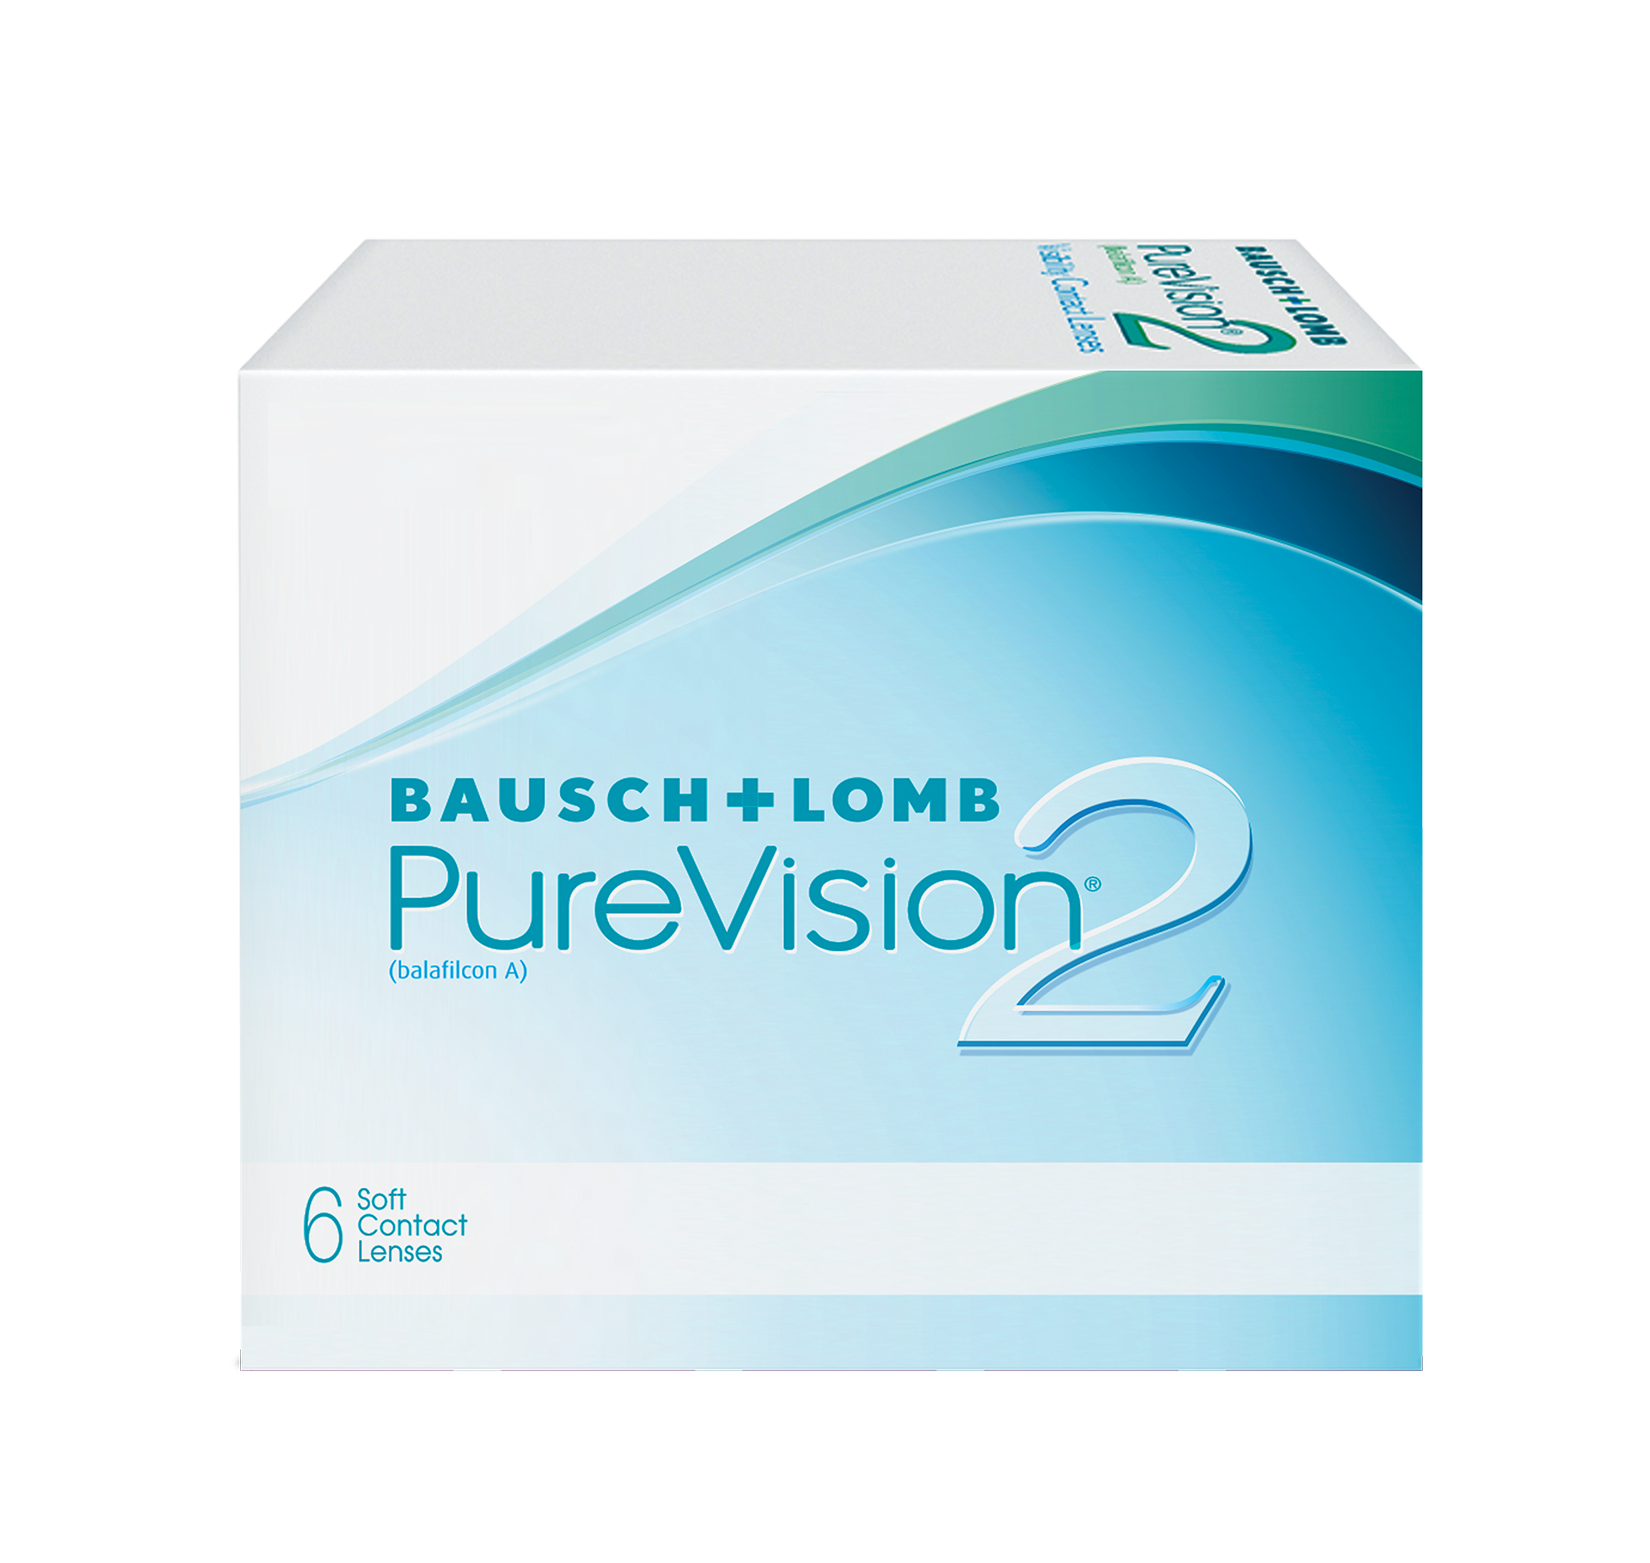 PureVision 2 HD Bausch Lomb